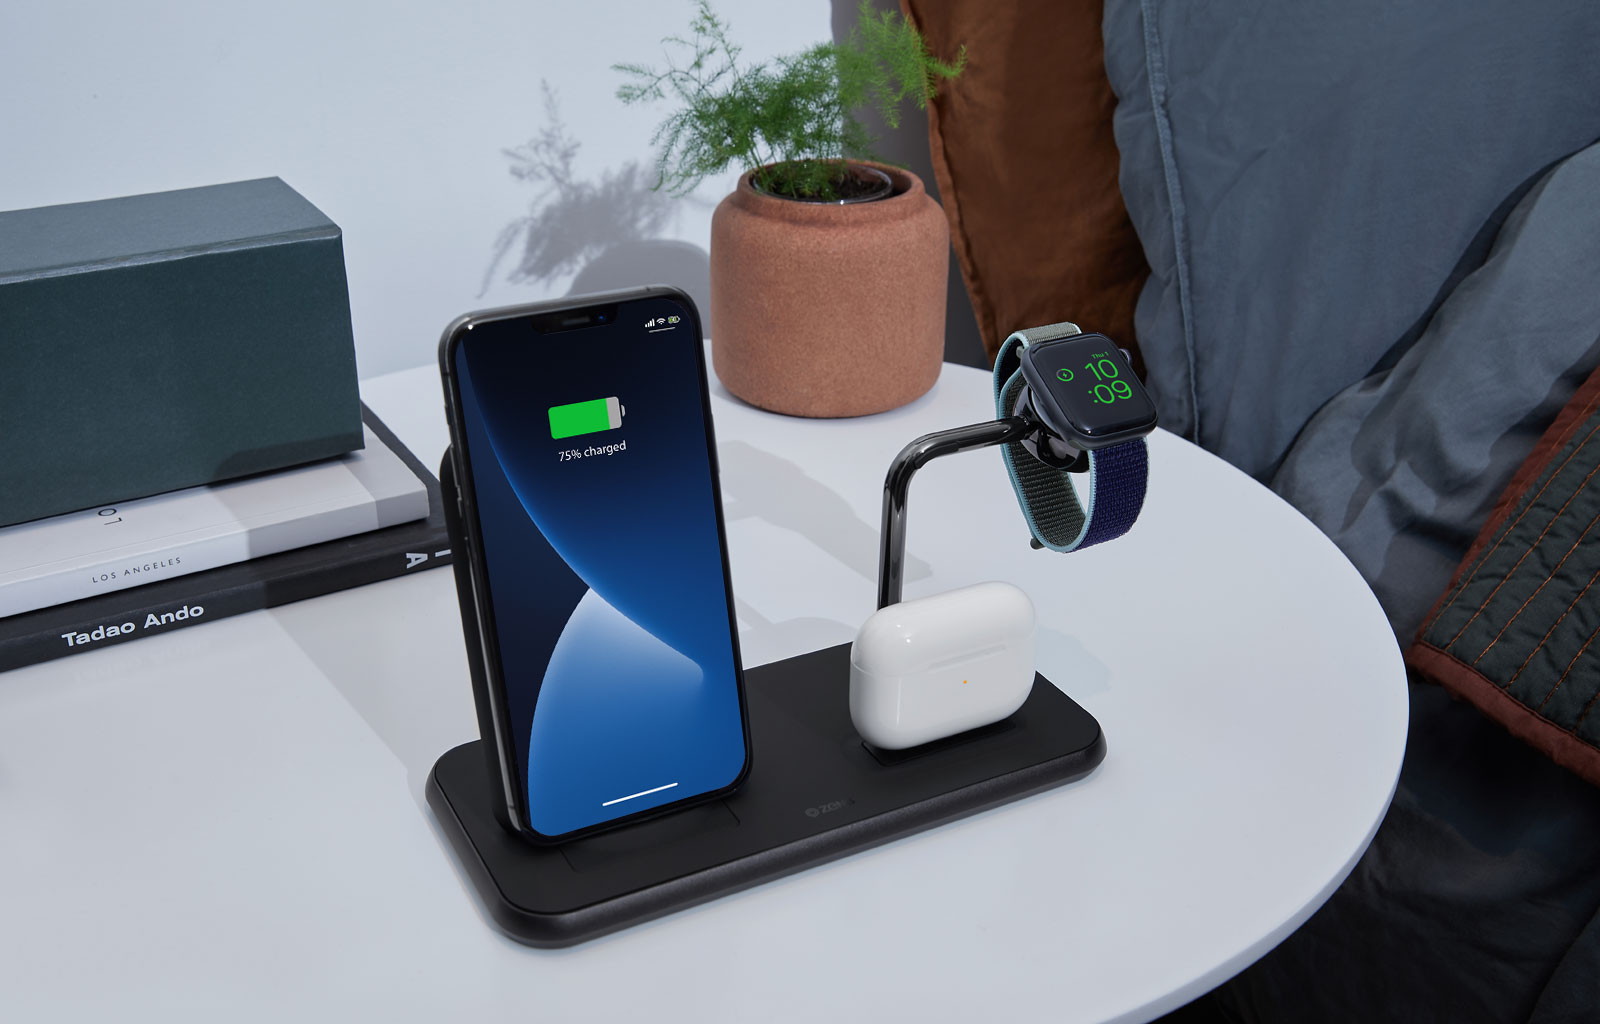 Wireless charger on bedside table